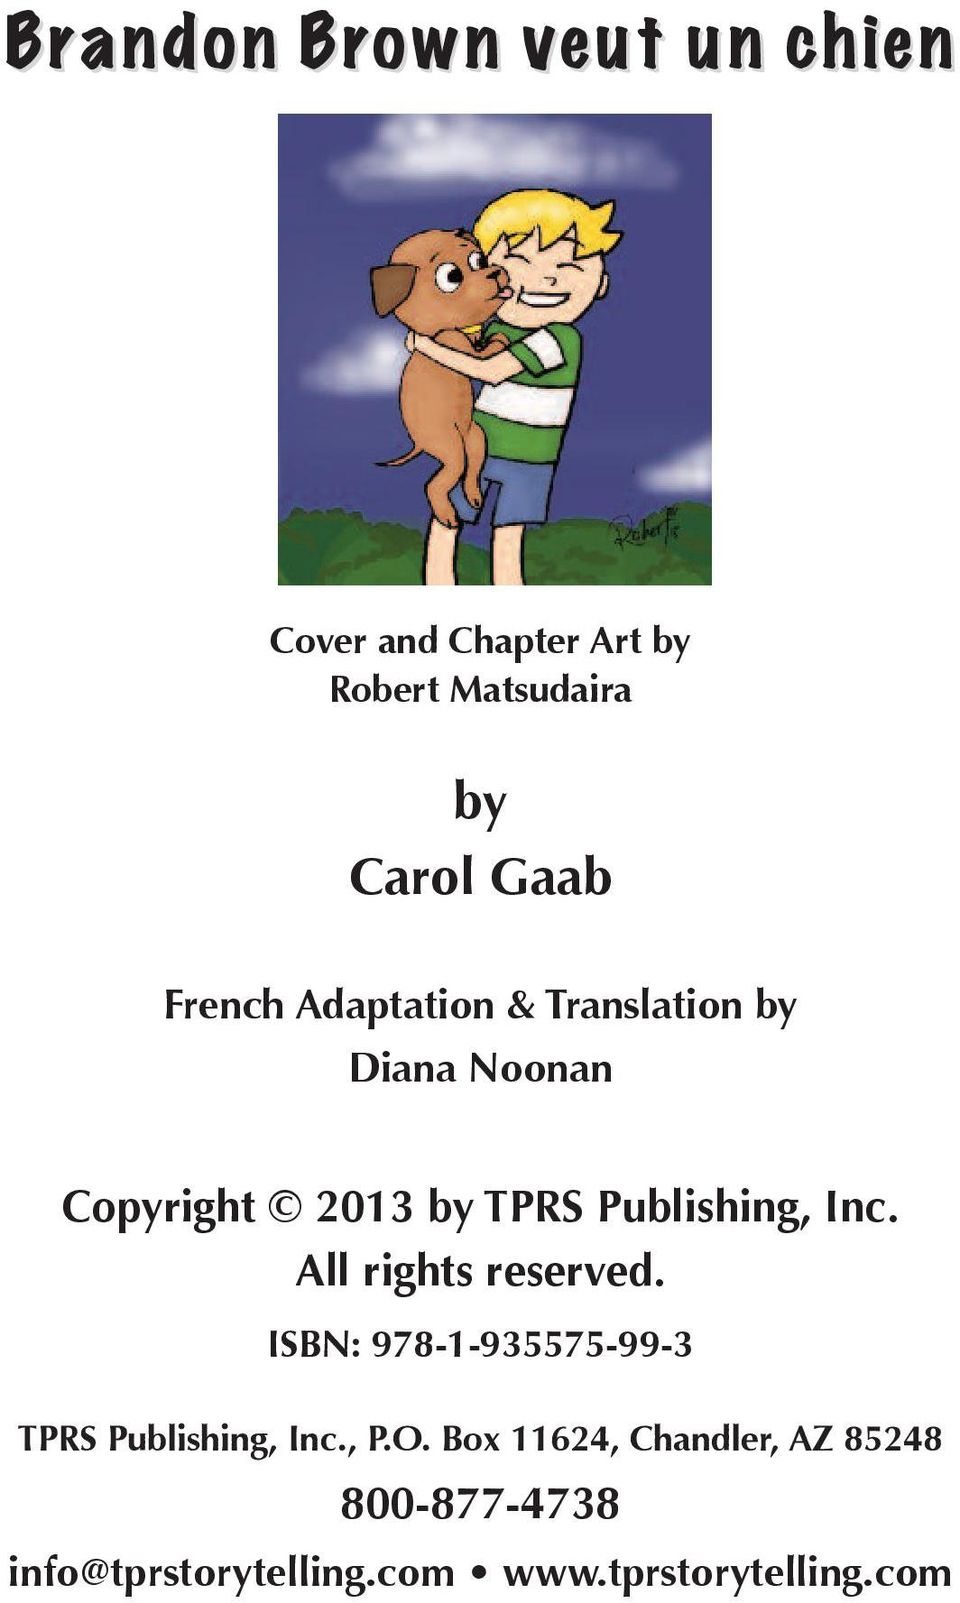 Inc. All rights reserved. ISBN: 978-1-935575-99-3 TPRS Publishing, Inc., P.O.